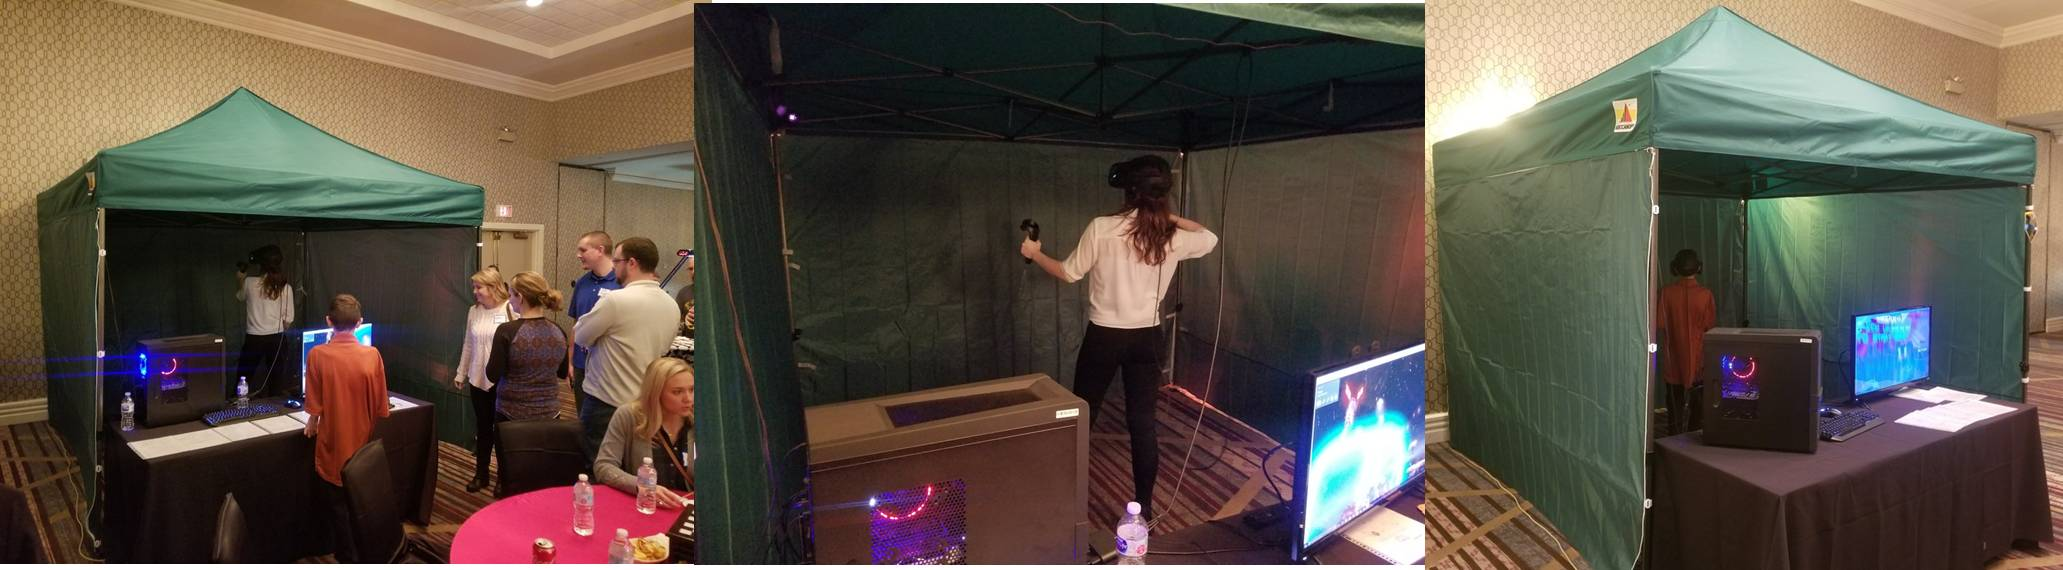 Virtual reality gaming tent at a video game birthday party in Frederick County and Baltimore, Maryland